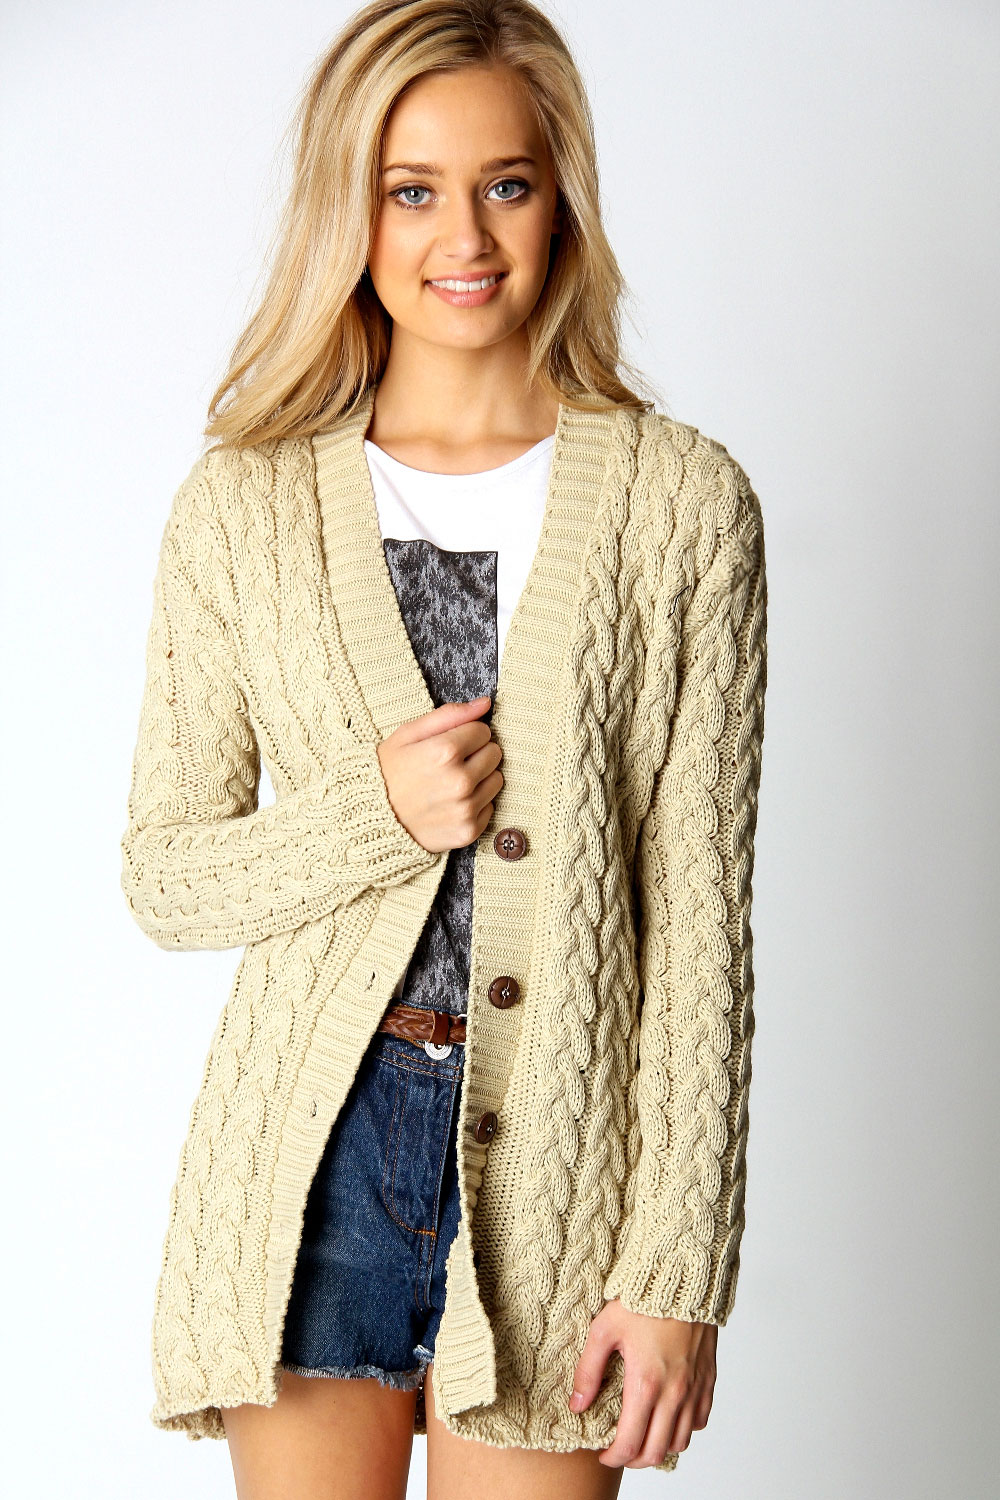 Ladies Knitted Cardigan Patterns Uk: Sheer ladies lace cardigan ...